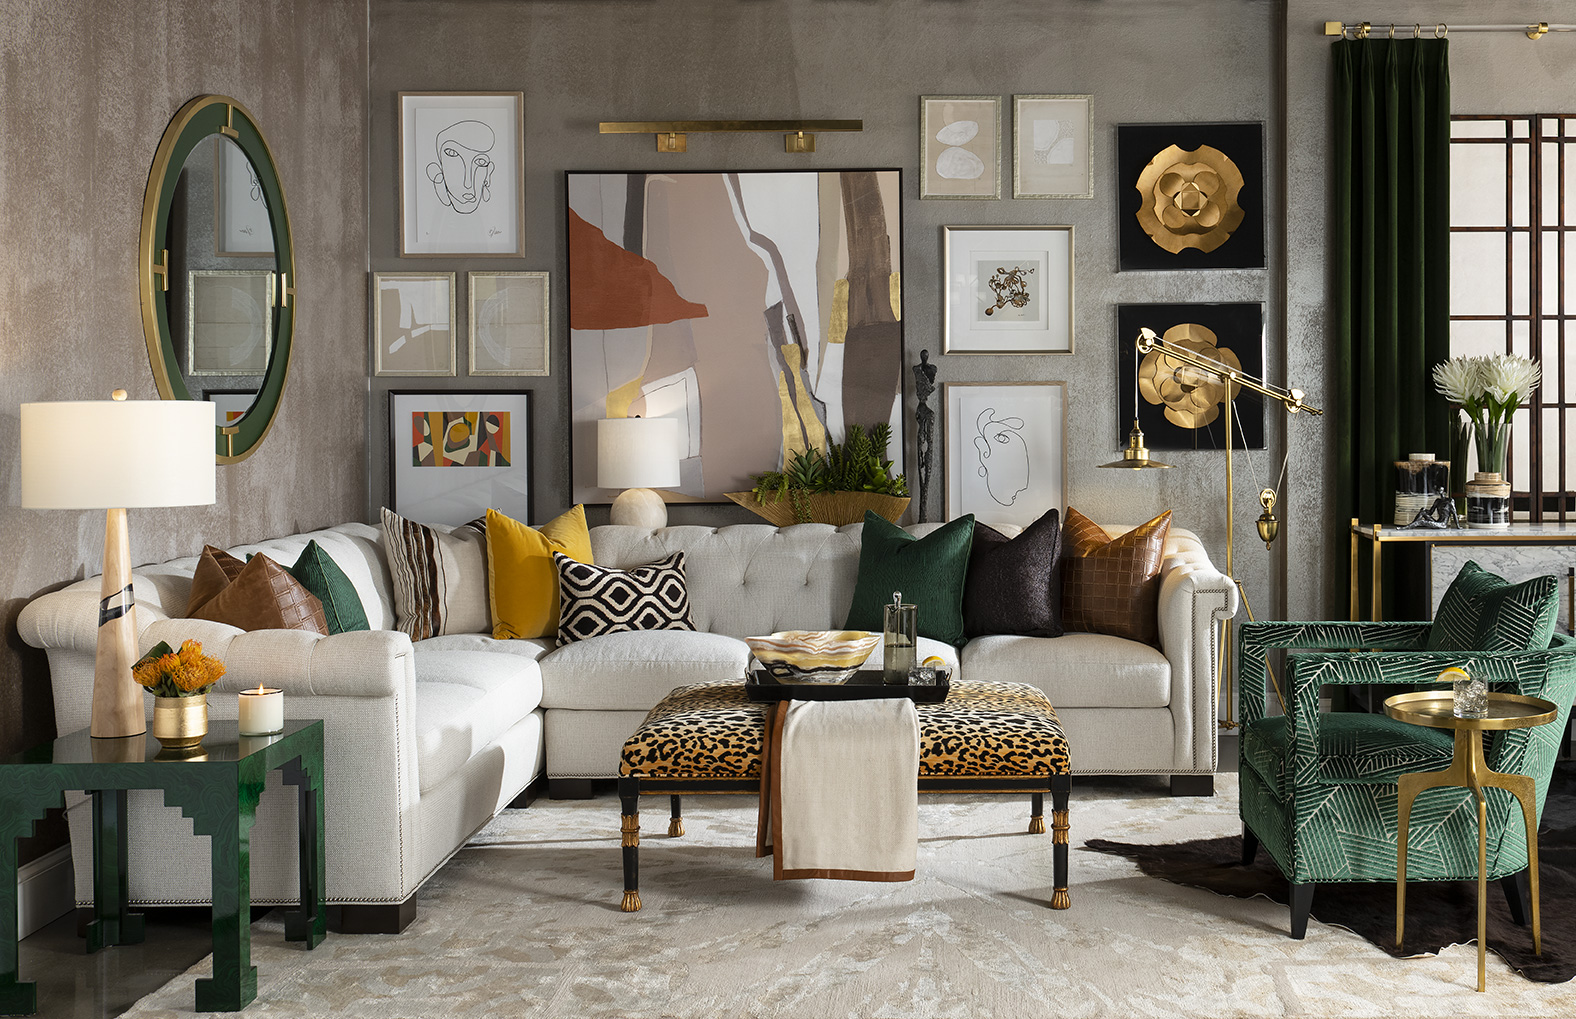 Living Room Design By Lauren Macnak, IBB Designer